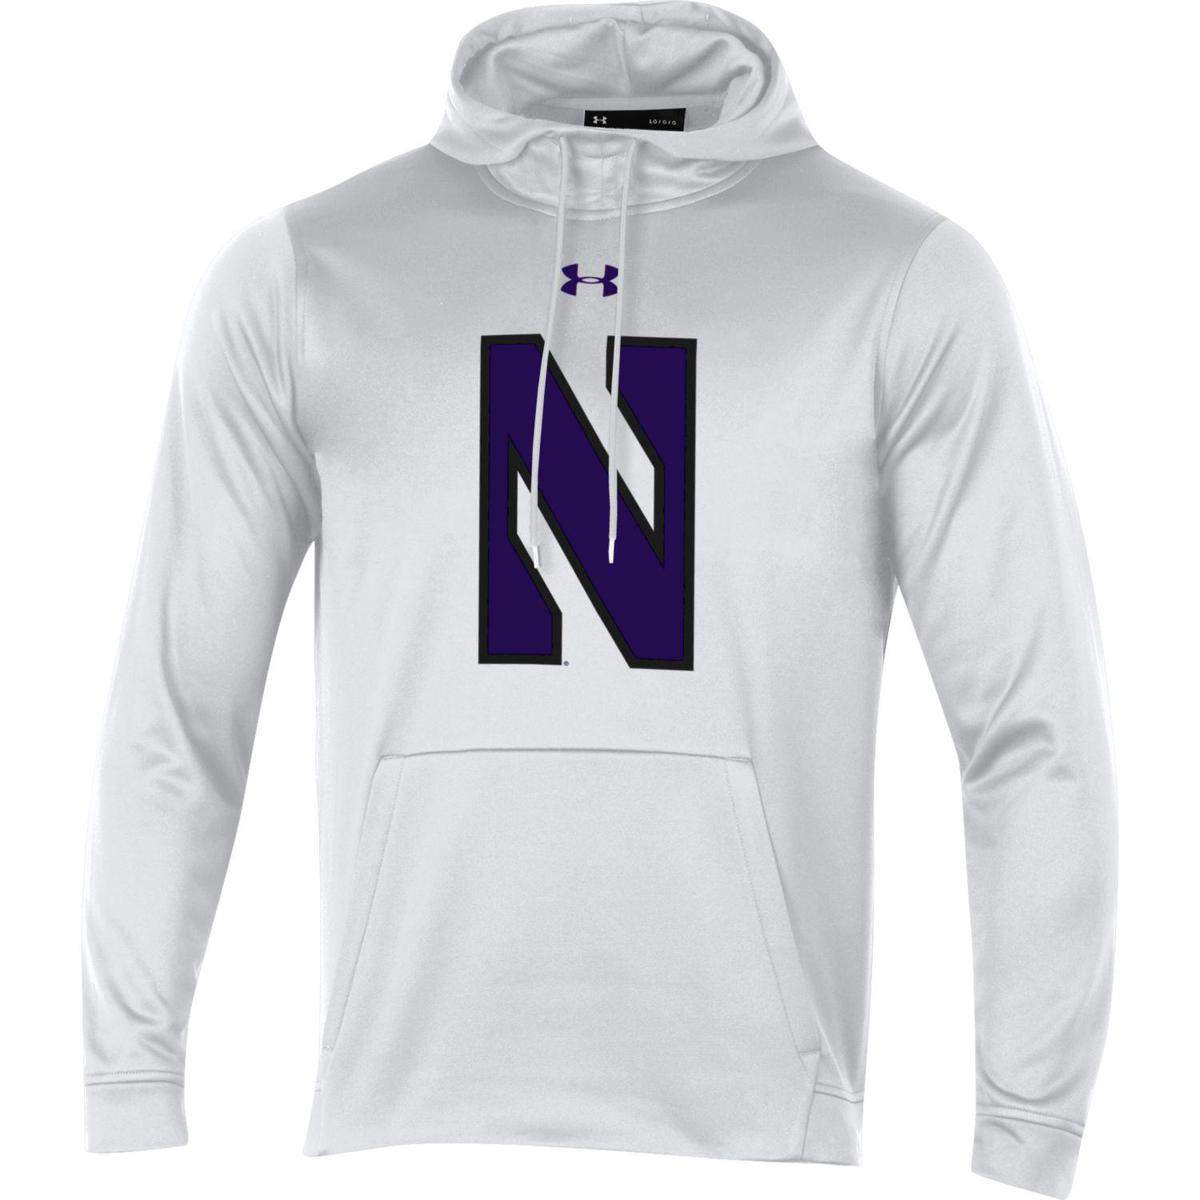 62edcb763 Northwestern University Wildcats Youth Under Armour Tactical Tech™ White  Hooded Sweatshirt with Stylized N Design